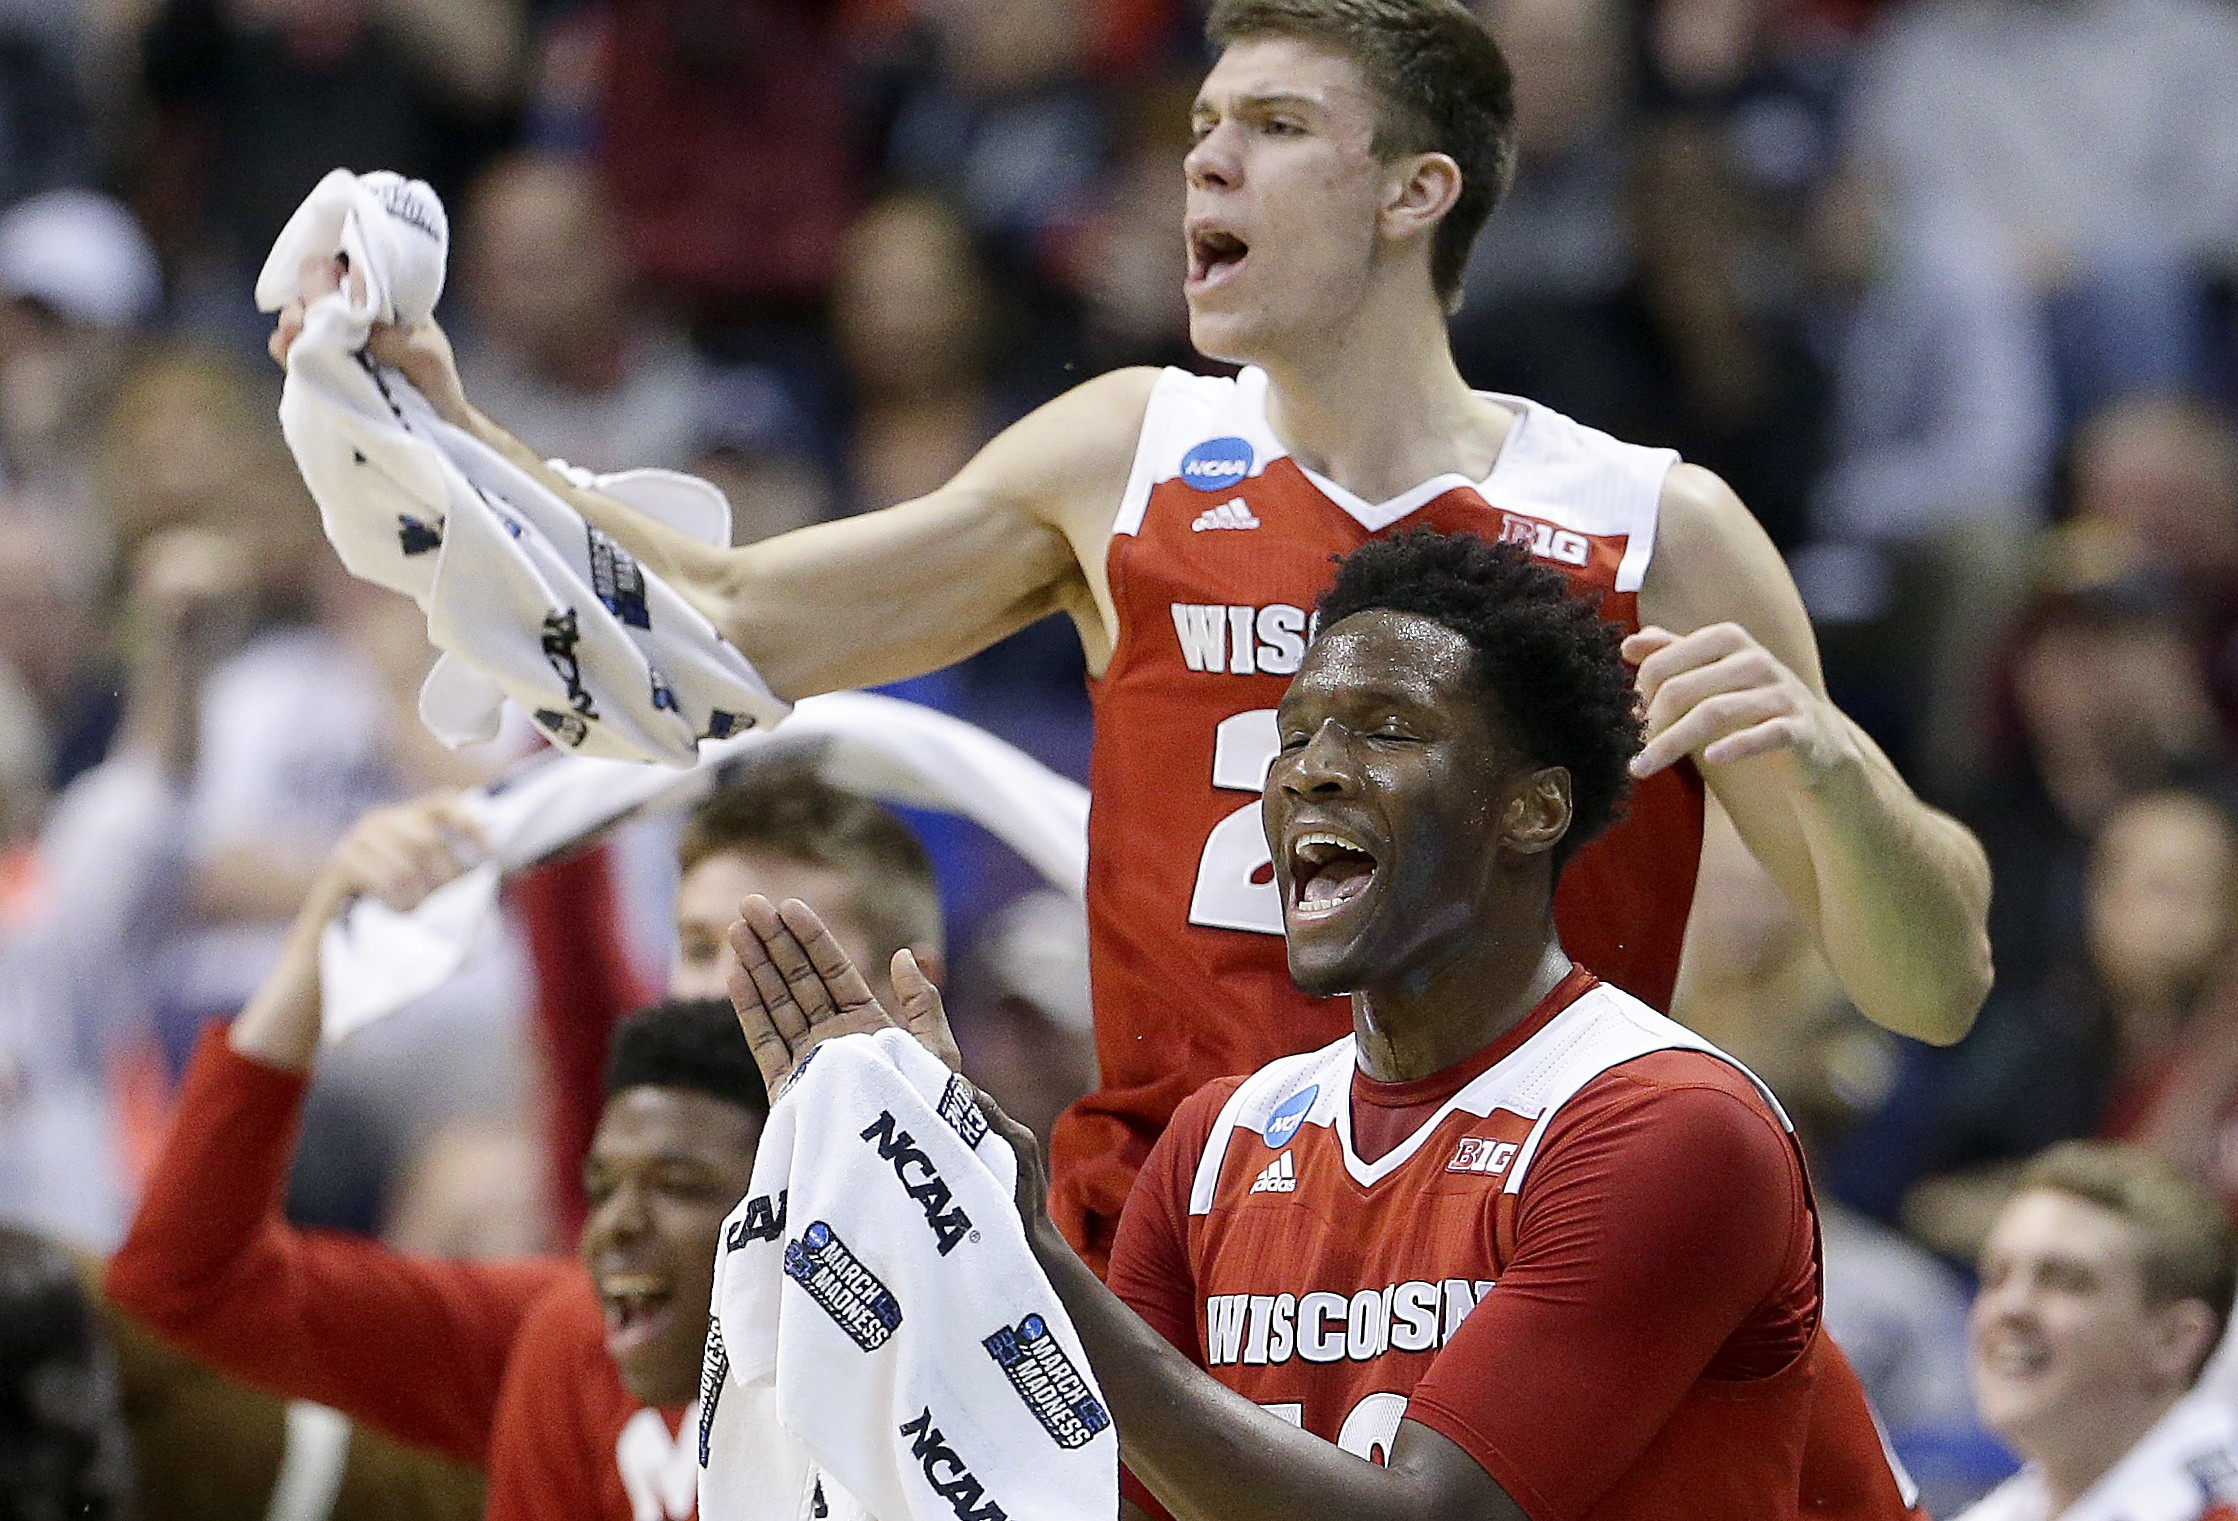 The Wisconsin bench celebrates a basket during the first half of a second-round men's college basketball game against Xavier in the NCAA Tournament, Sunday, March 20, 2016, in St. Louis. (AP Photo/Charlie Riedel)